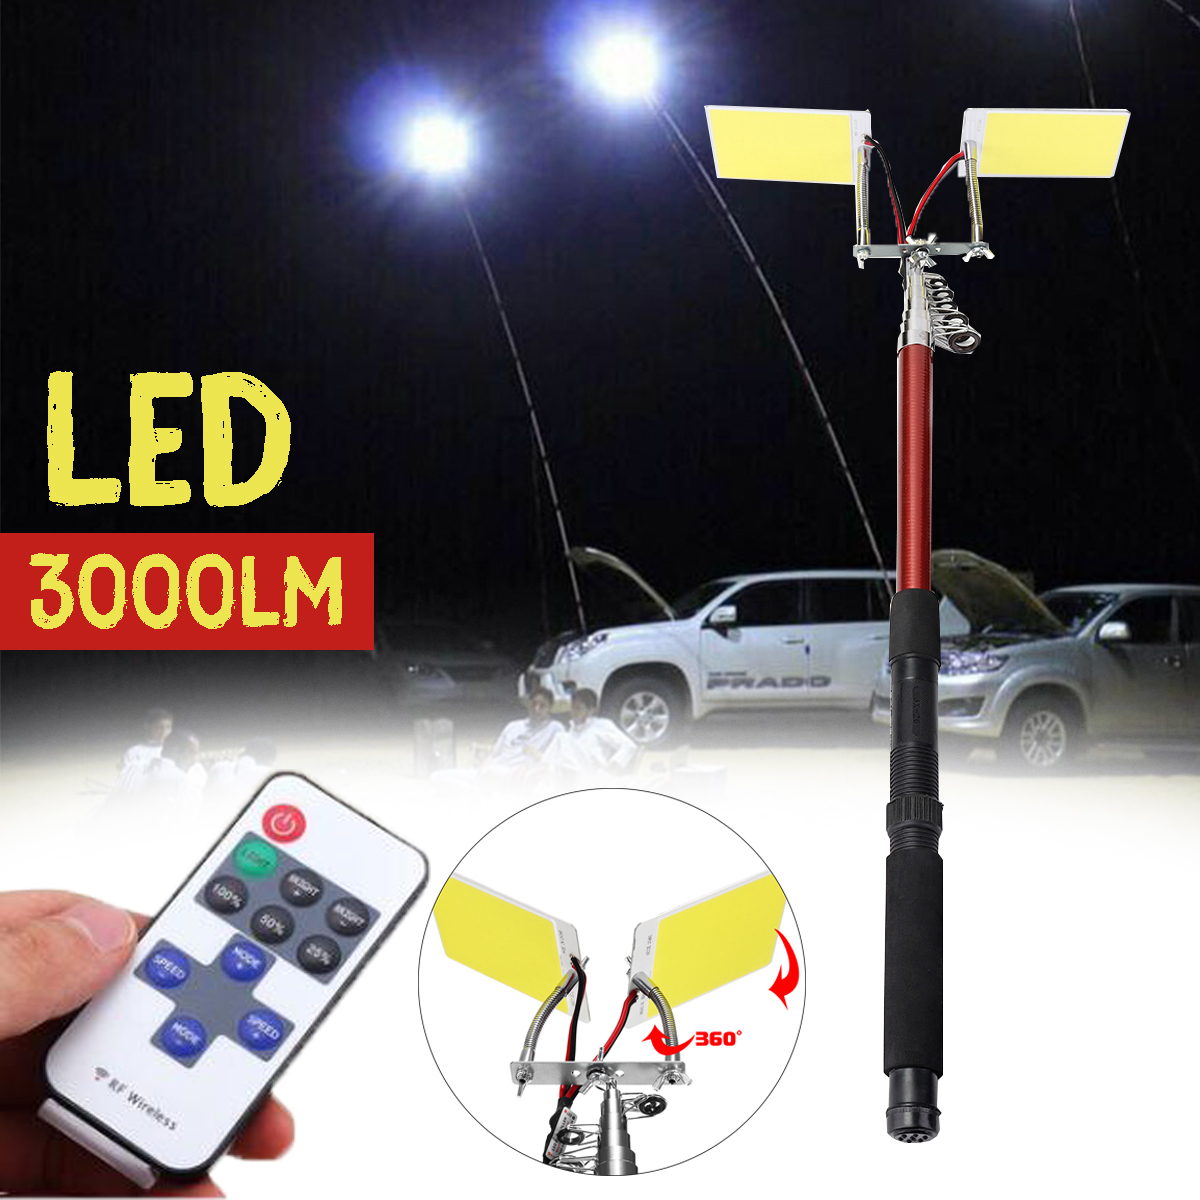 3.75M 12V Telescopic LED Fishing Rod Outdoor Lantern Remote Control Camping Lamp Light For Road Trip Self-drive Travelling